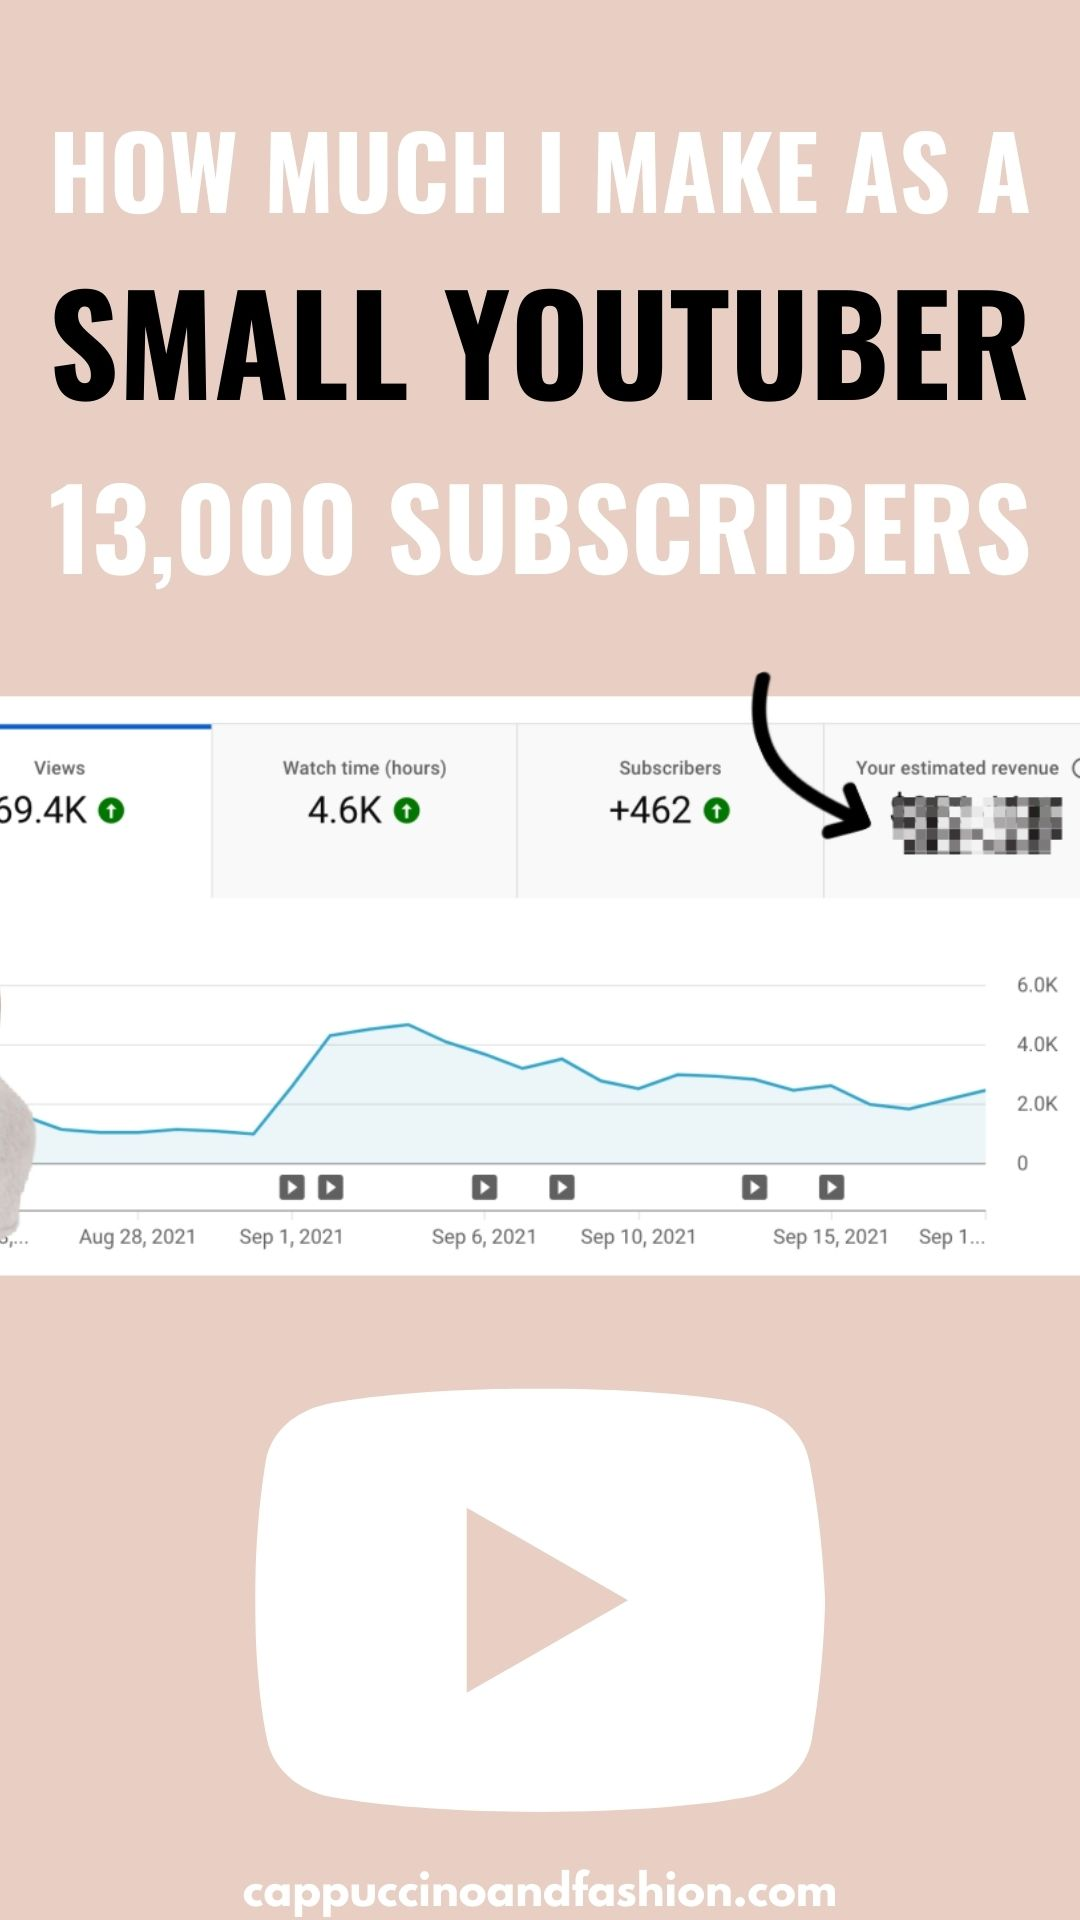 How Much Do Small Youtubers Make on Adsense